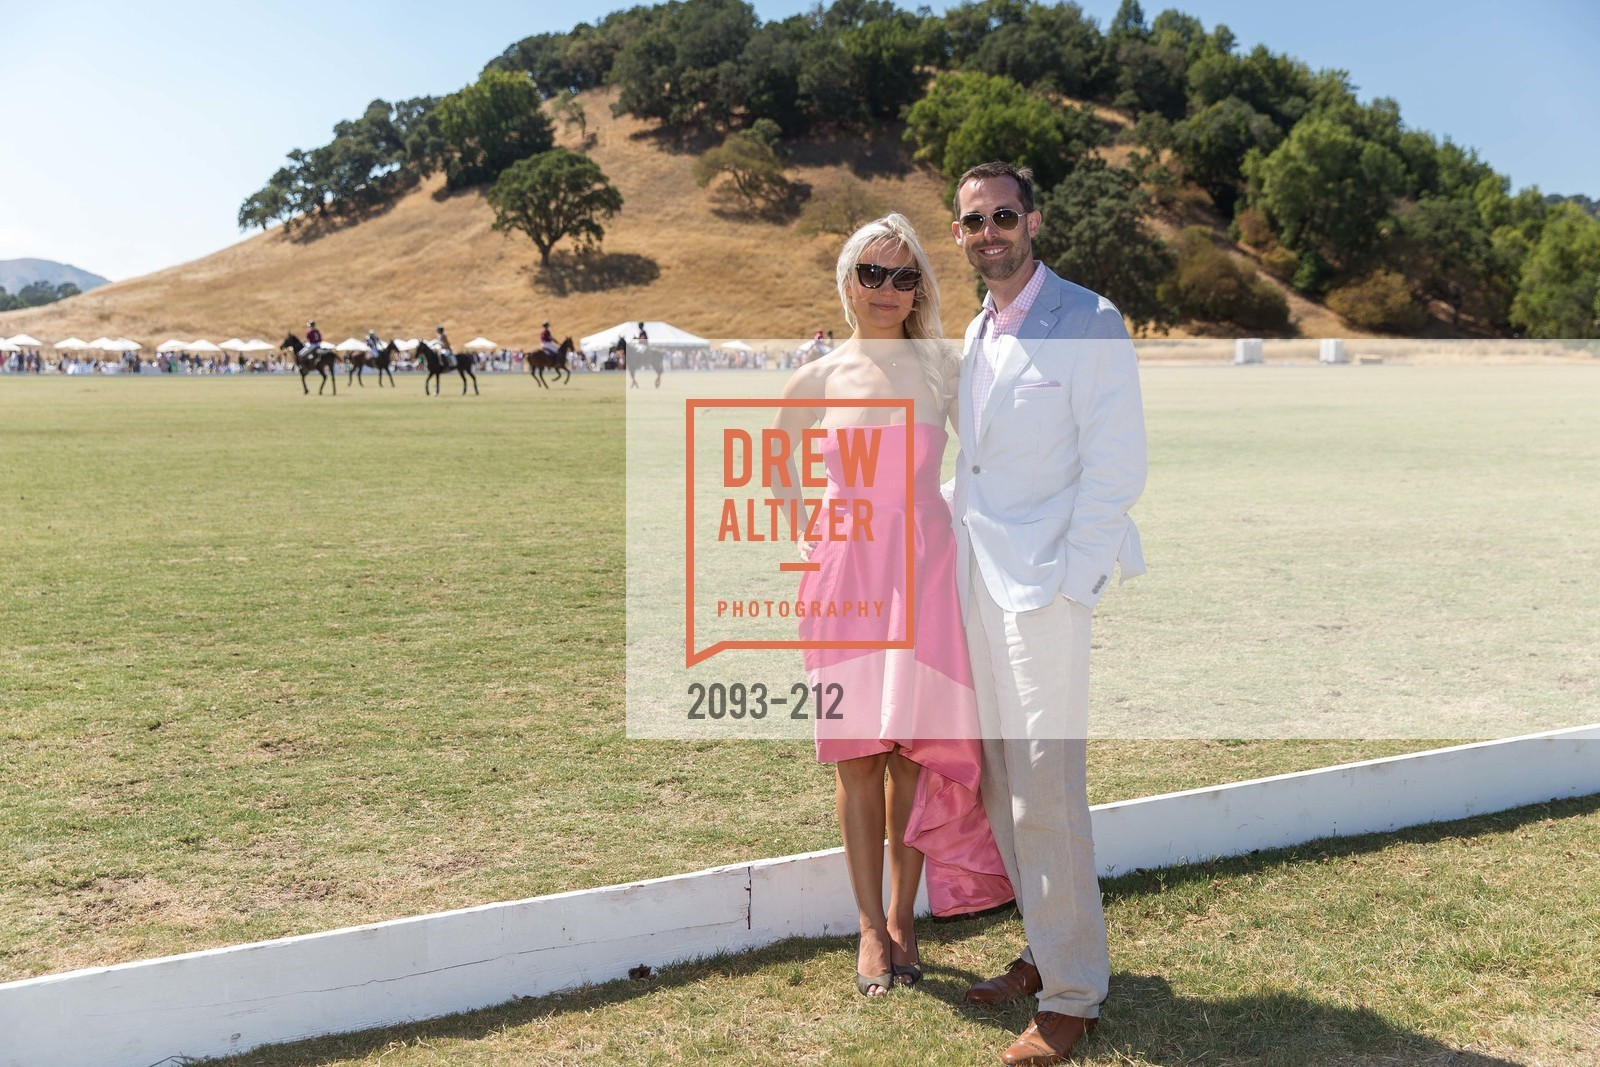 Lauren Willis, Brad Johnson, Stick & Ball Oyster Cup Polo Tournament, Cerro Pampa Polo Club, July 25th, 2015,Drew Altizer, Drew Altizer Photography, full-service agency, private events, San Francisco photographer, photographer california